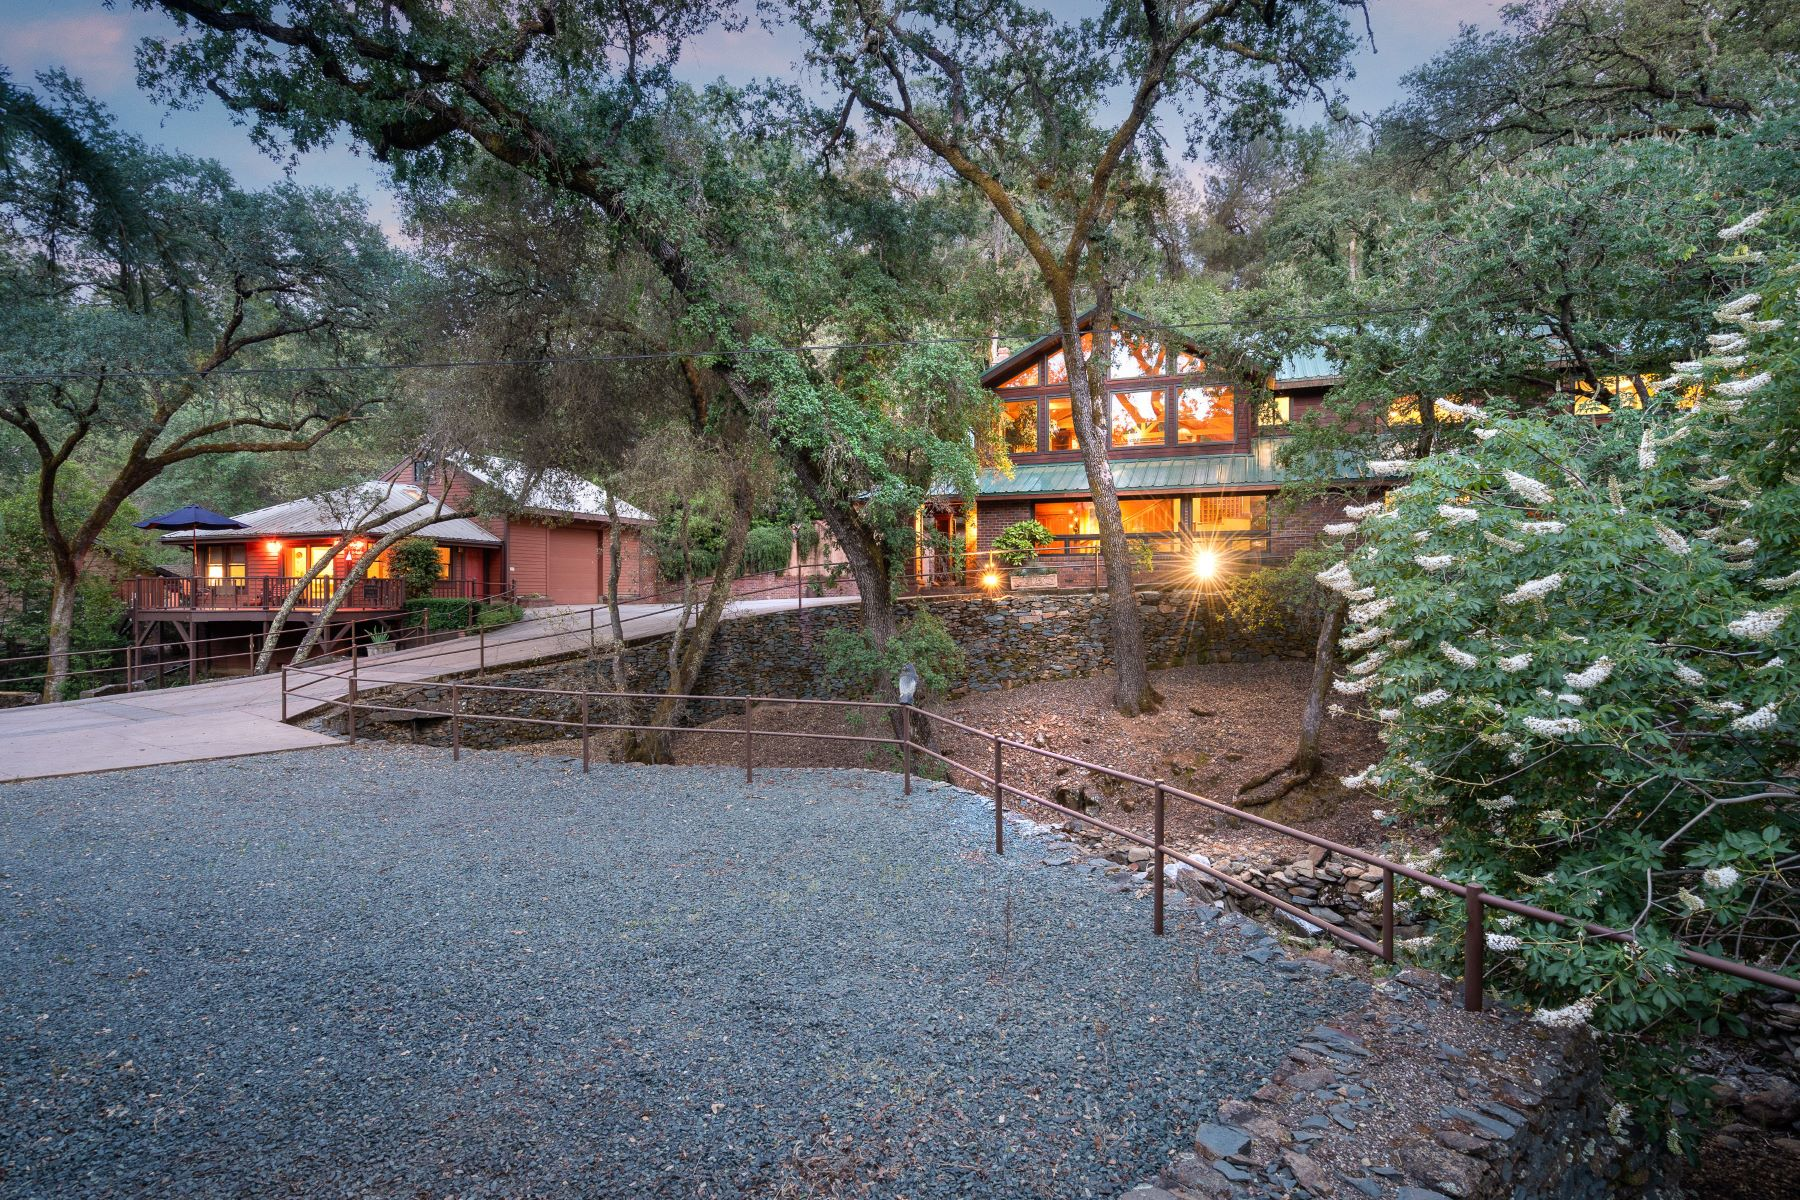 Single Family Homes for Active at Beautiful Estate Hidden Away in the Middle of Historic Downtown Sutter Creek 110 Allen Ranch Road Sutter Creek, California 95685 United States